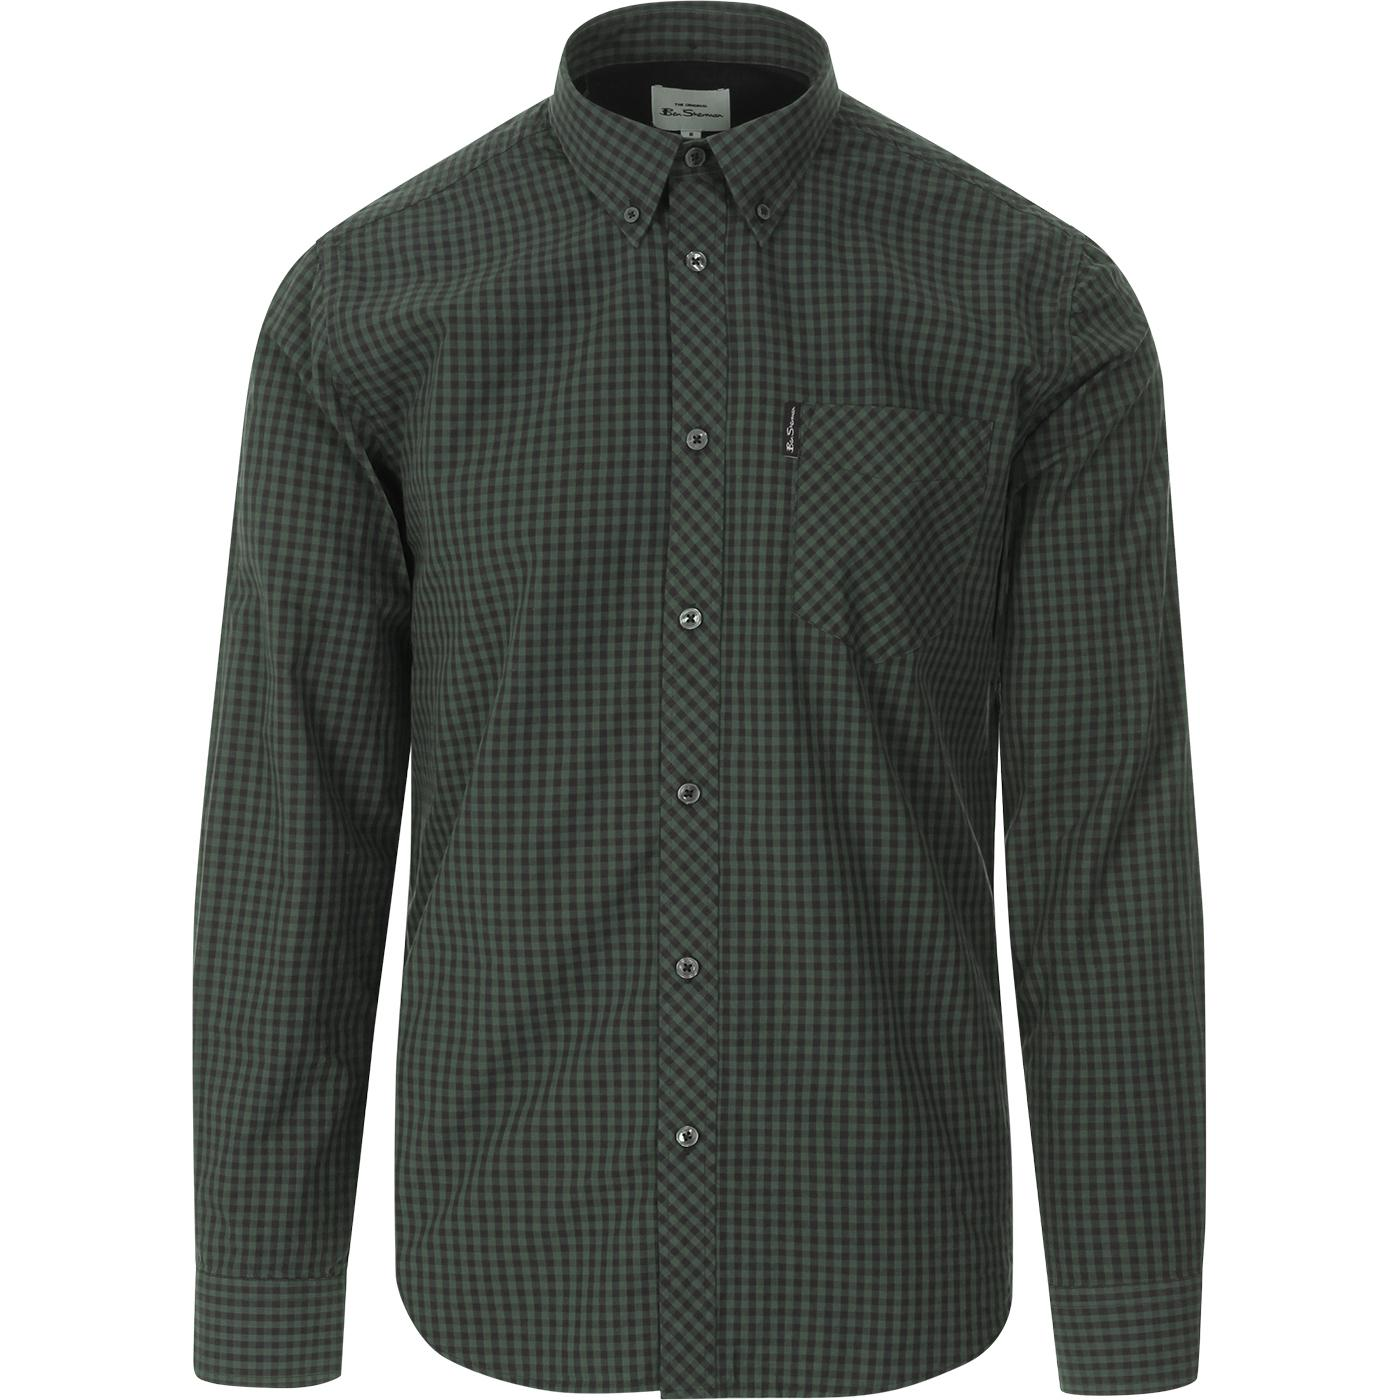 BEN SHERMAN Signature Long Sleeve Gingham Shirt LG